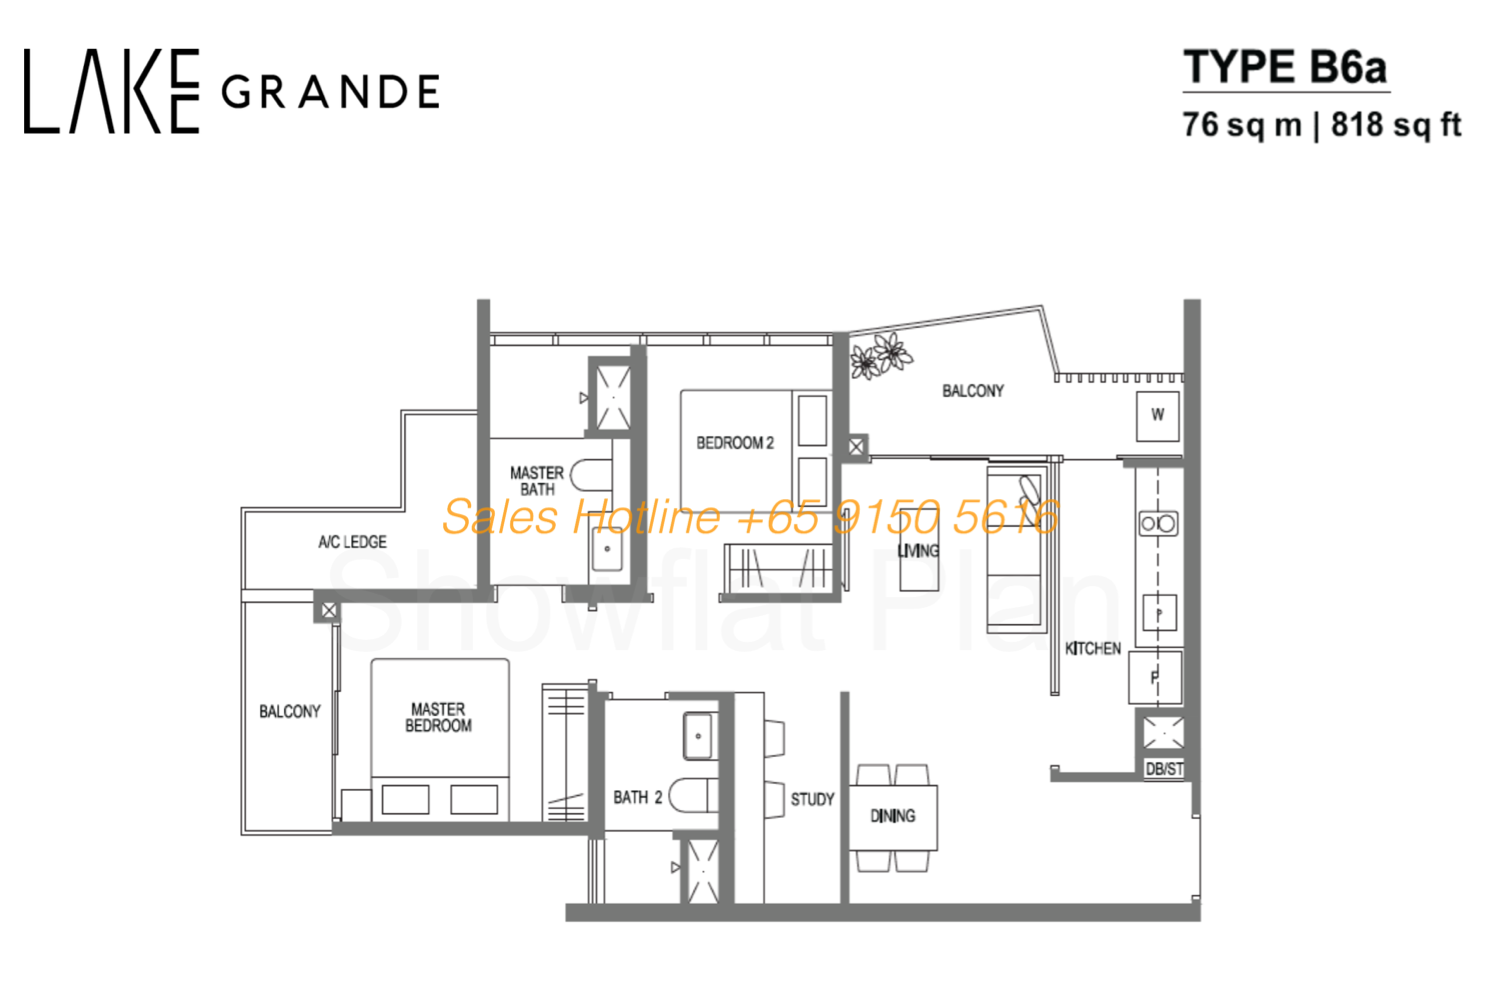 Lake Grande Floor Plan 3 Bedroom